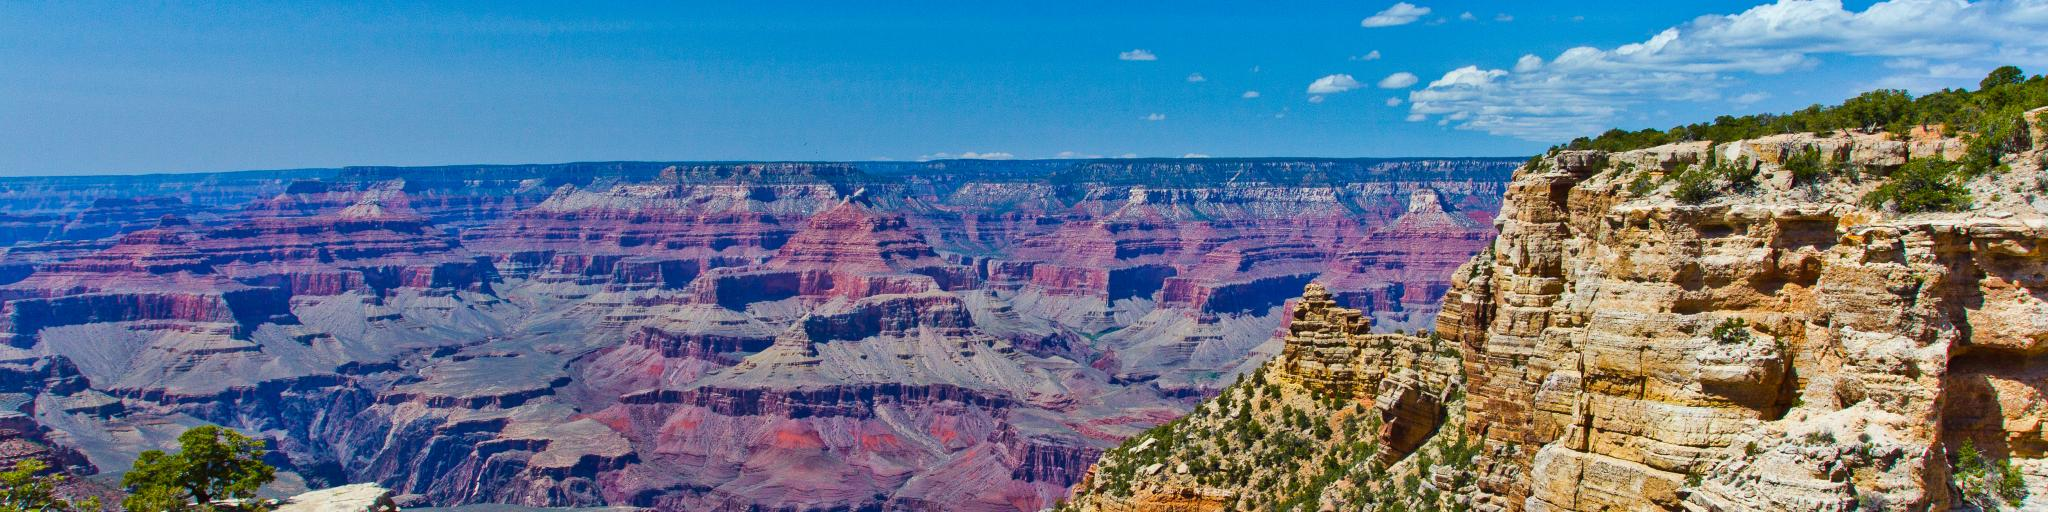 A great view of Grand Canyon National Park in a clear blue sky.